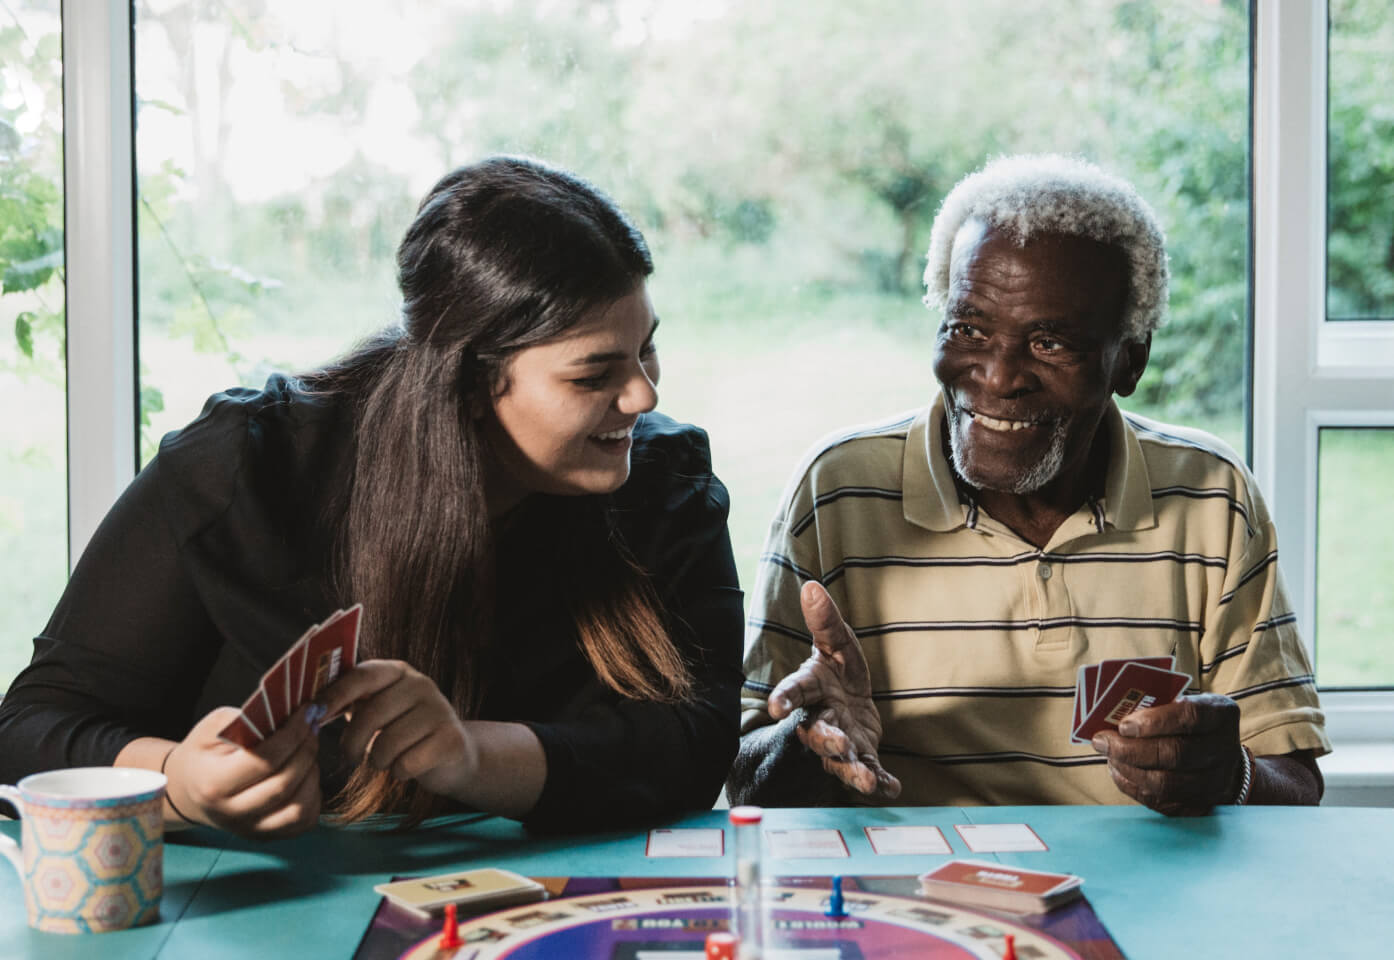 elderly man and carer play board games